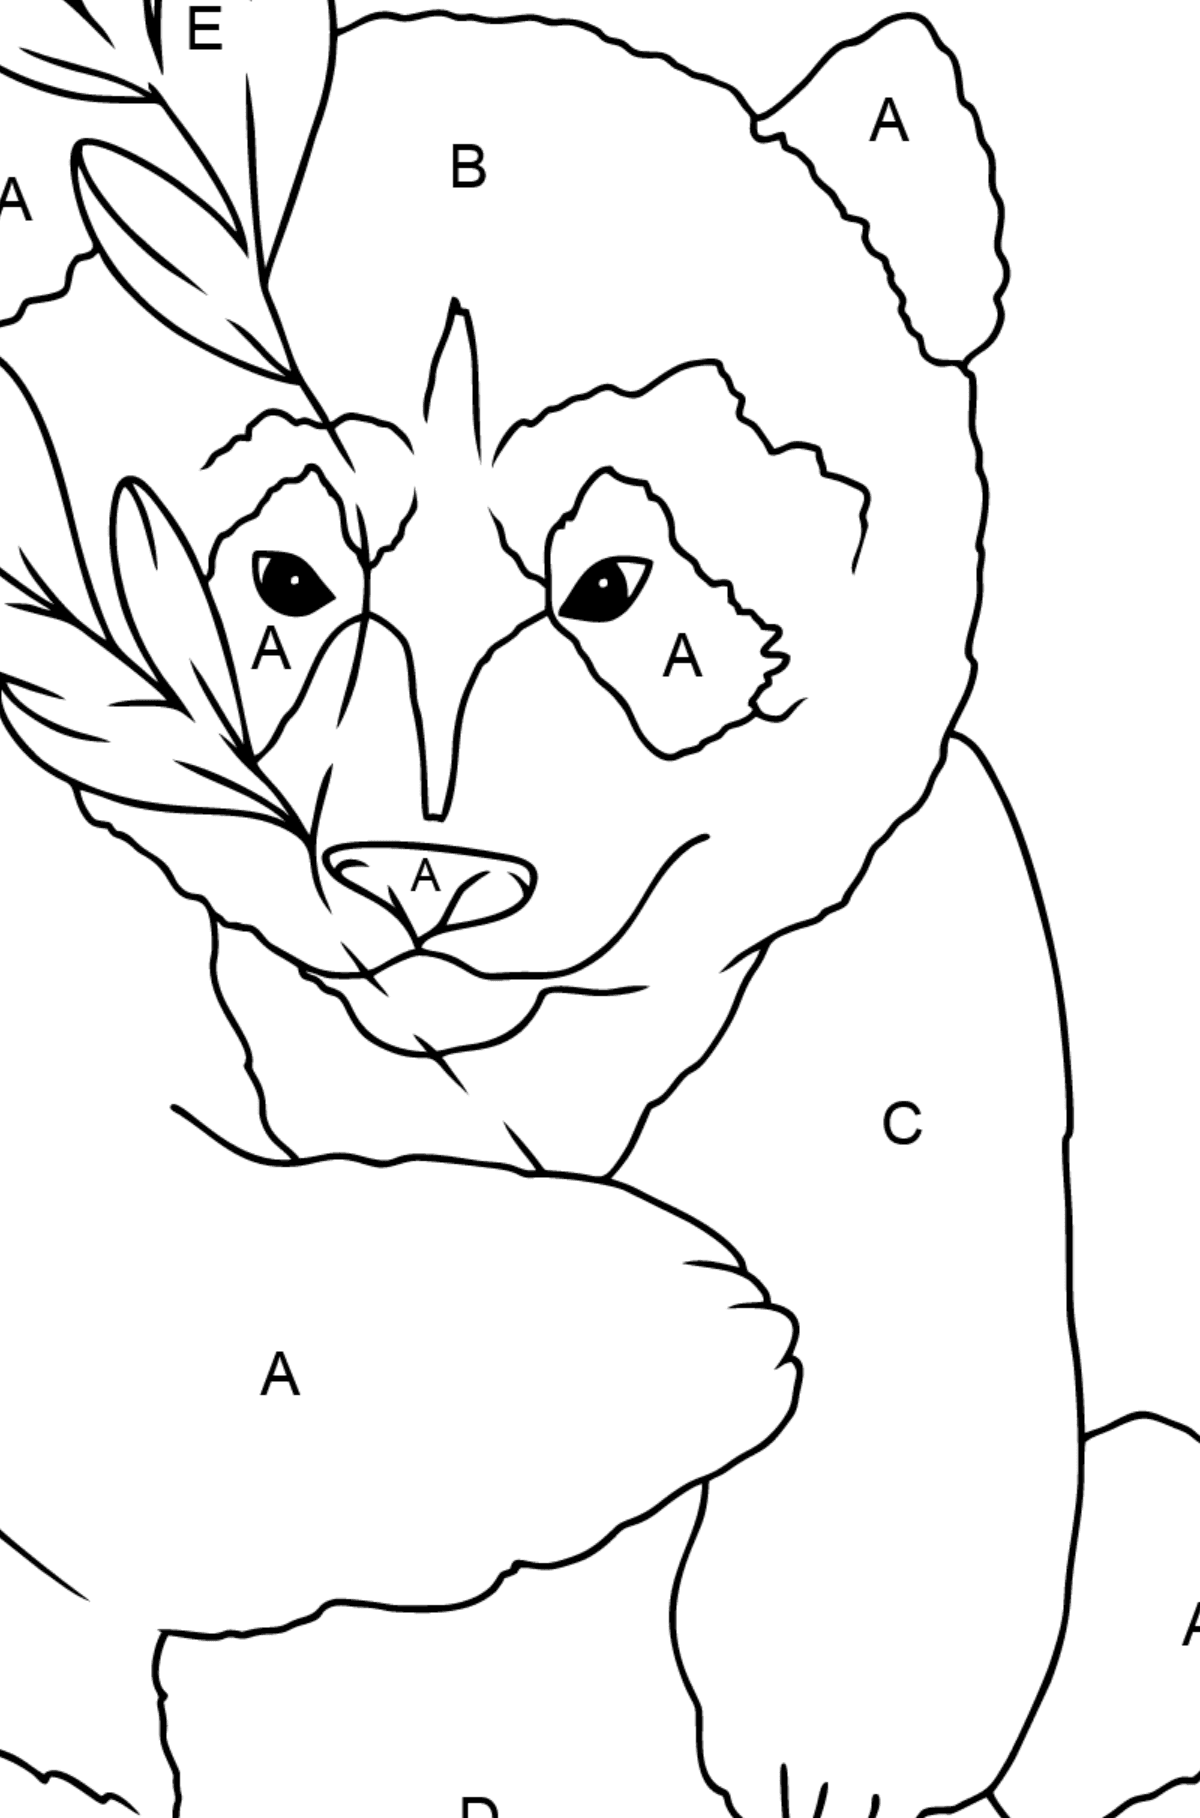 Coloring Page - A Panda is Hugging Bamboo Leaves - Coloring by Letters for Children